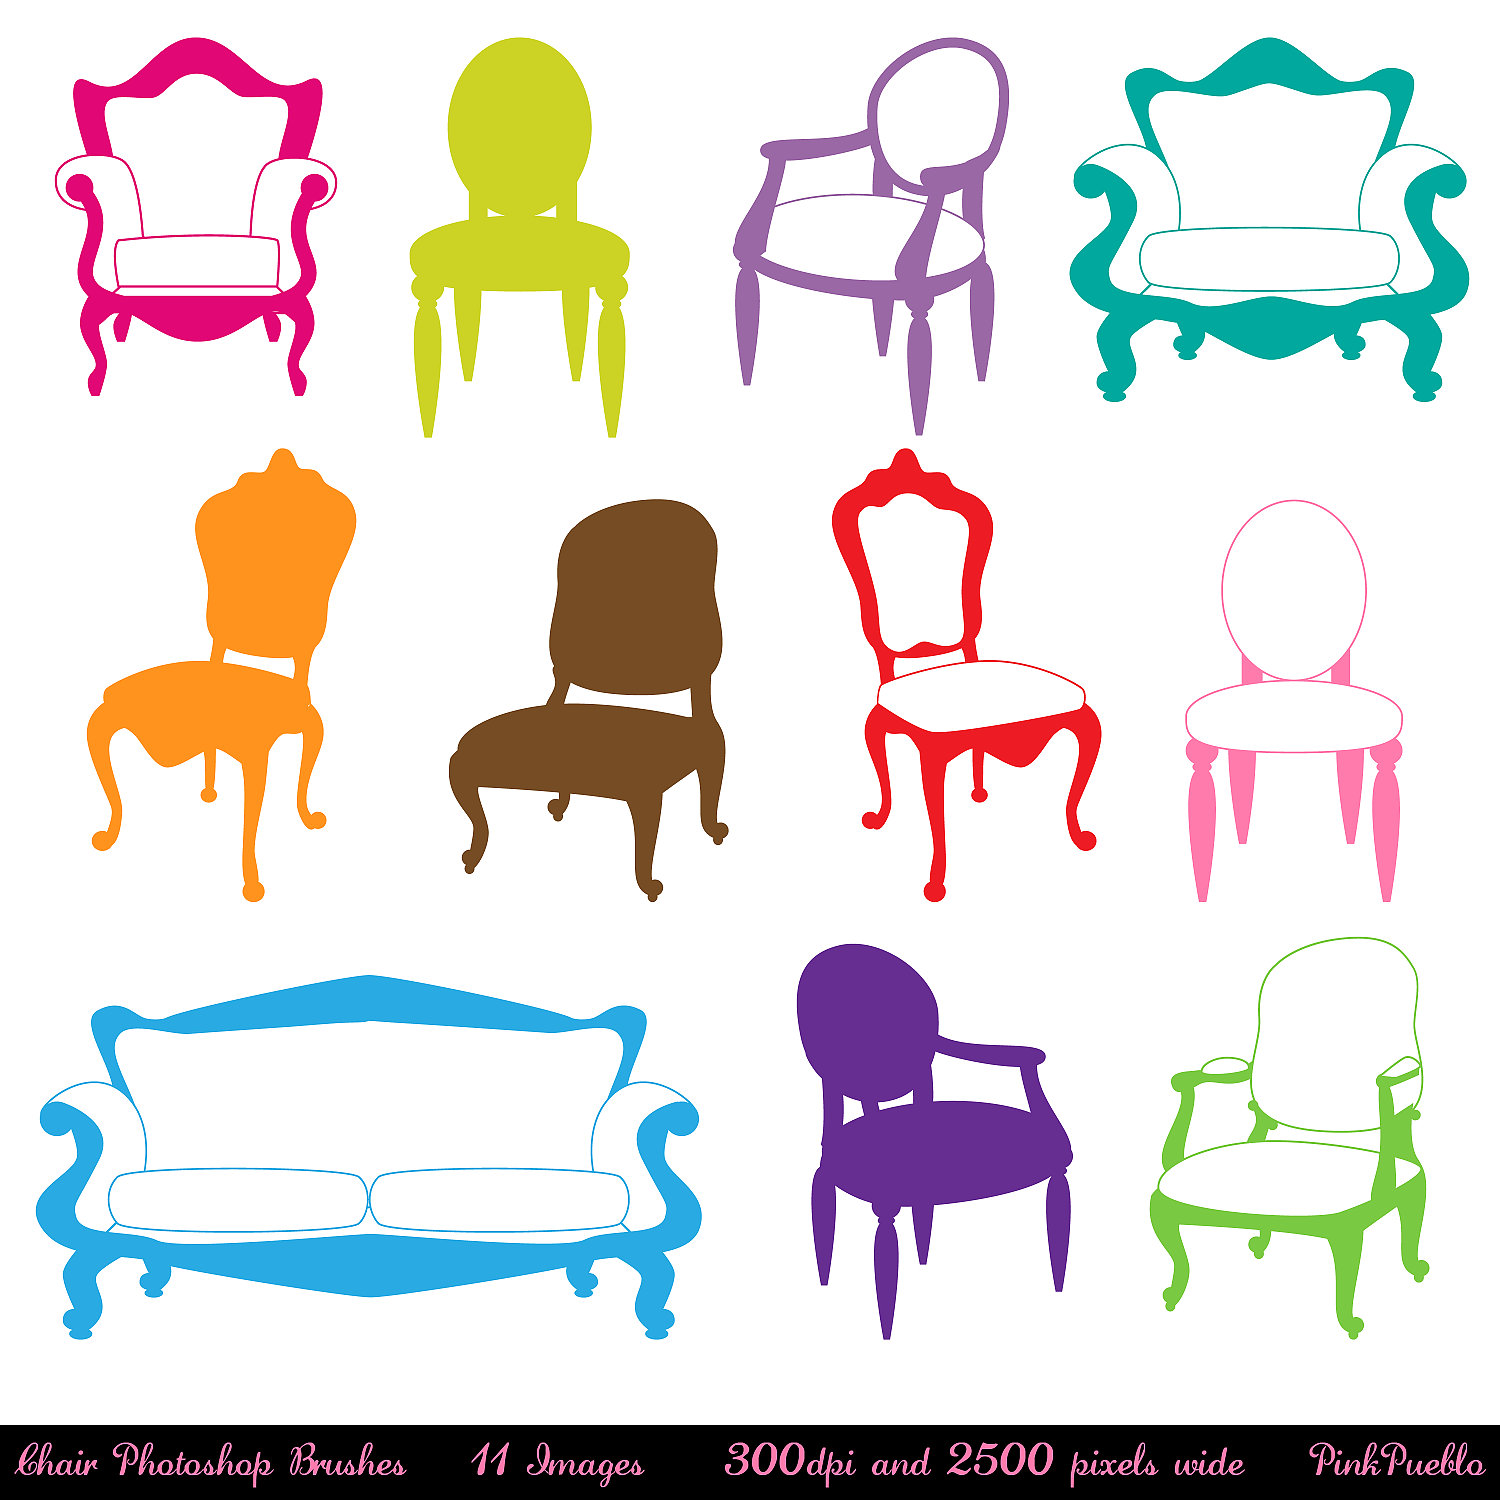 Furniture clipart furniture store Chair Photoshop Decor Brushes Photoshop